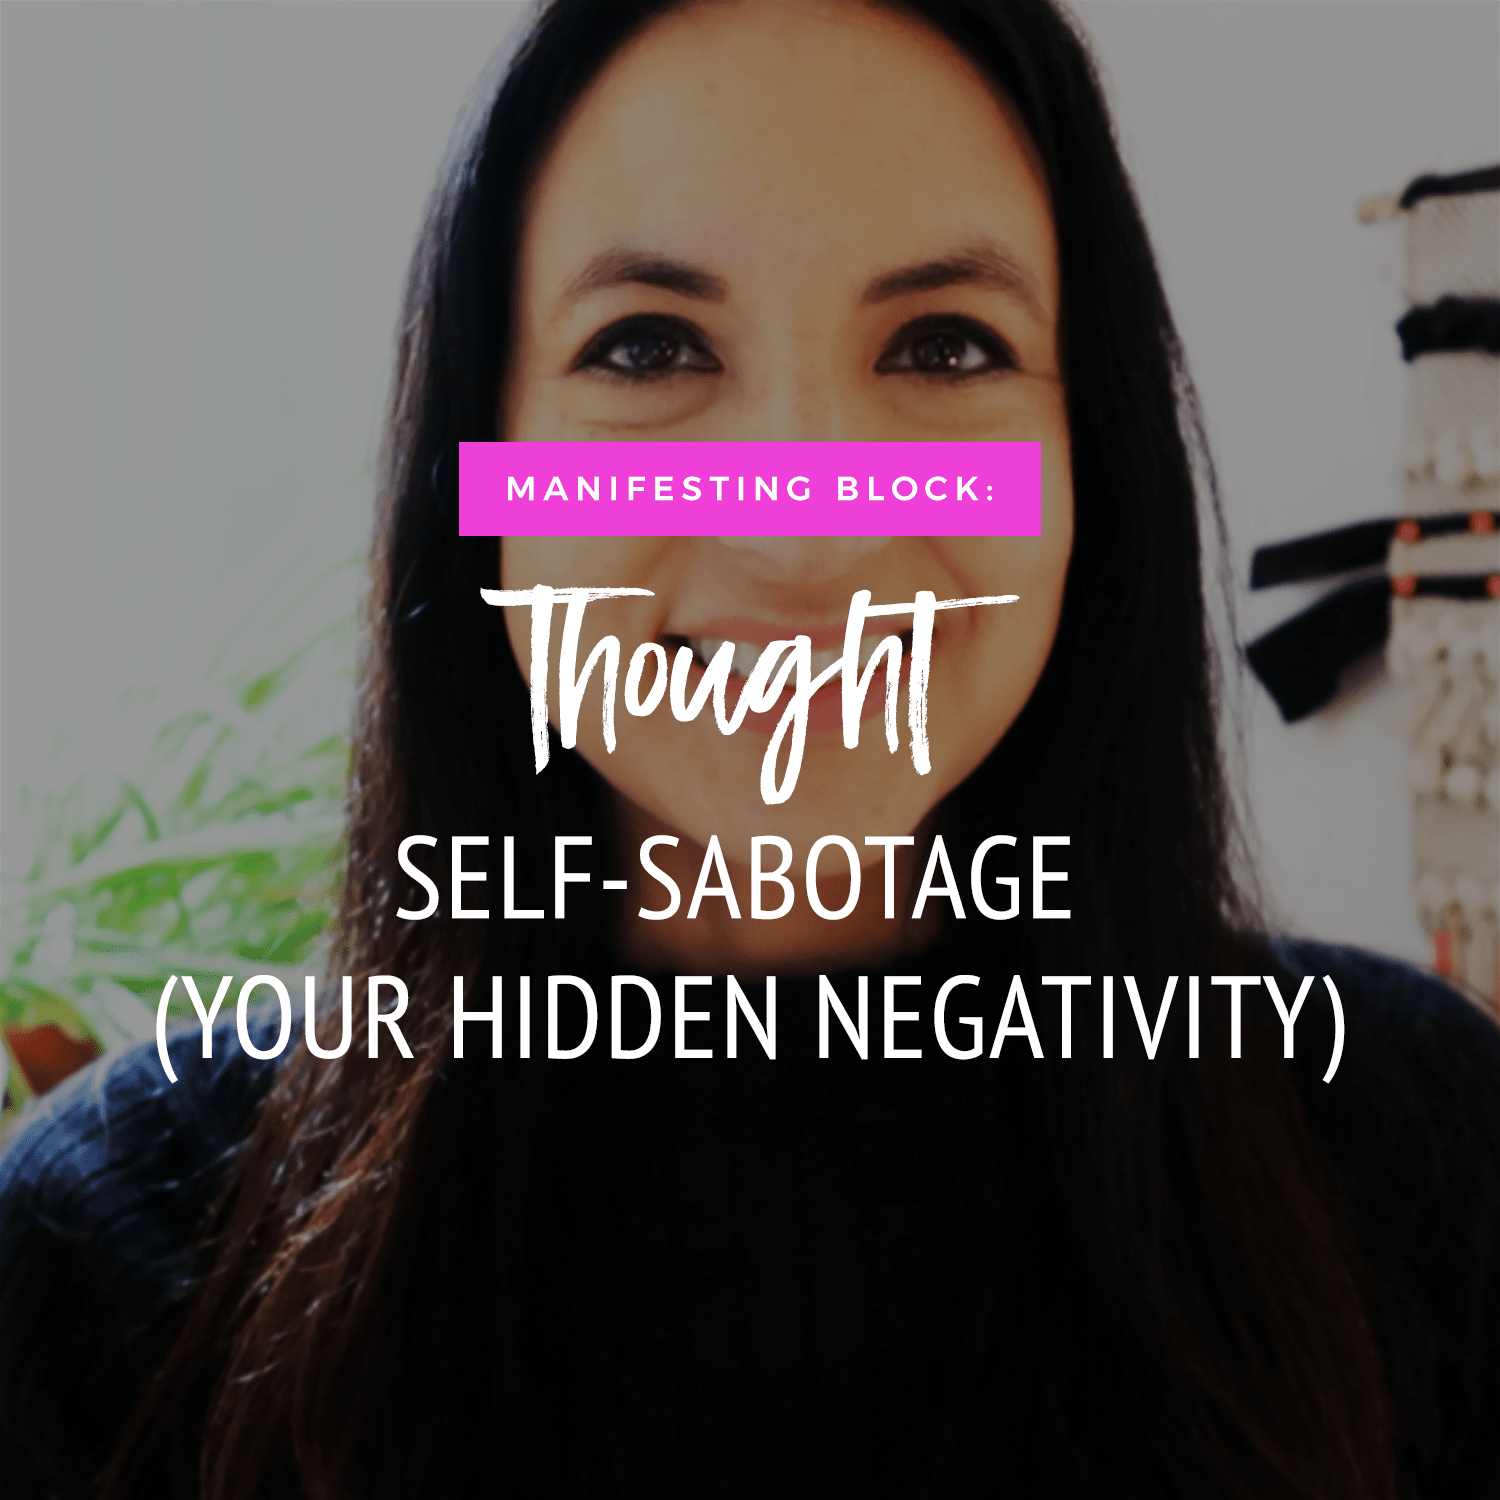 Manifesting Block: Thought Self-Sabotage (Your Hidden Negativity)